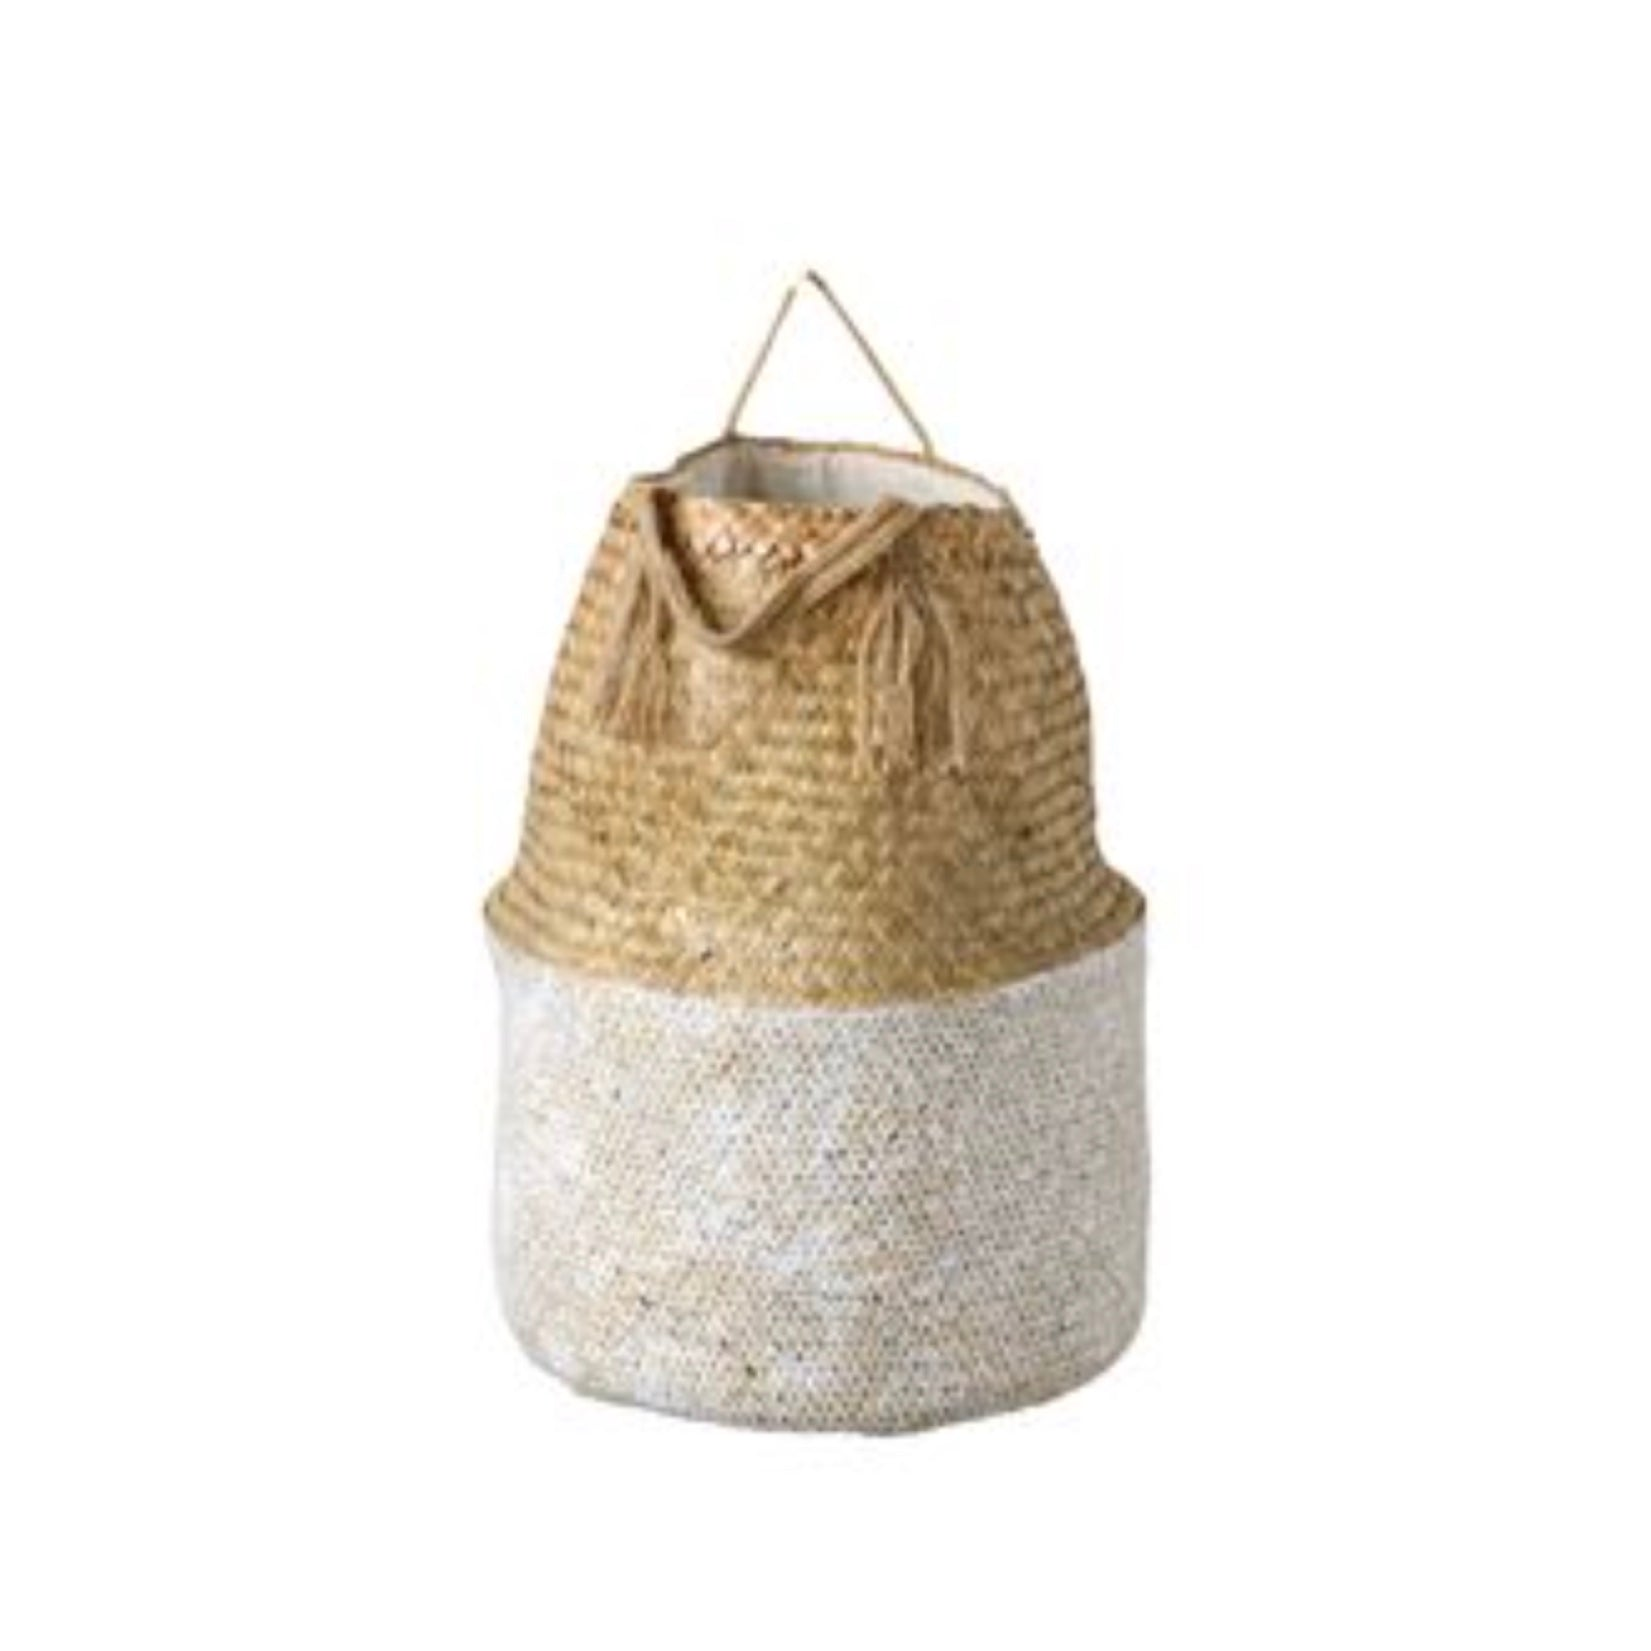 White and Natural Seagrass Baskets with Handles, CCO-Creative Co-op - Design Home, Putti Fine Furnishings